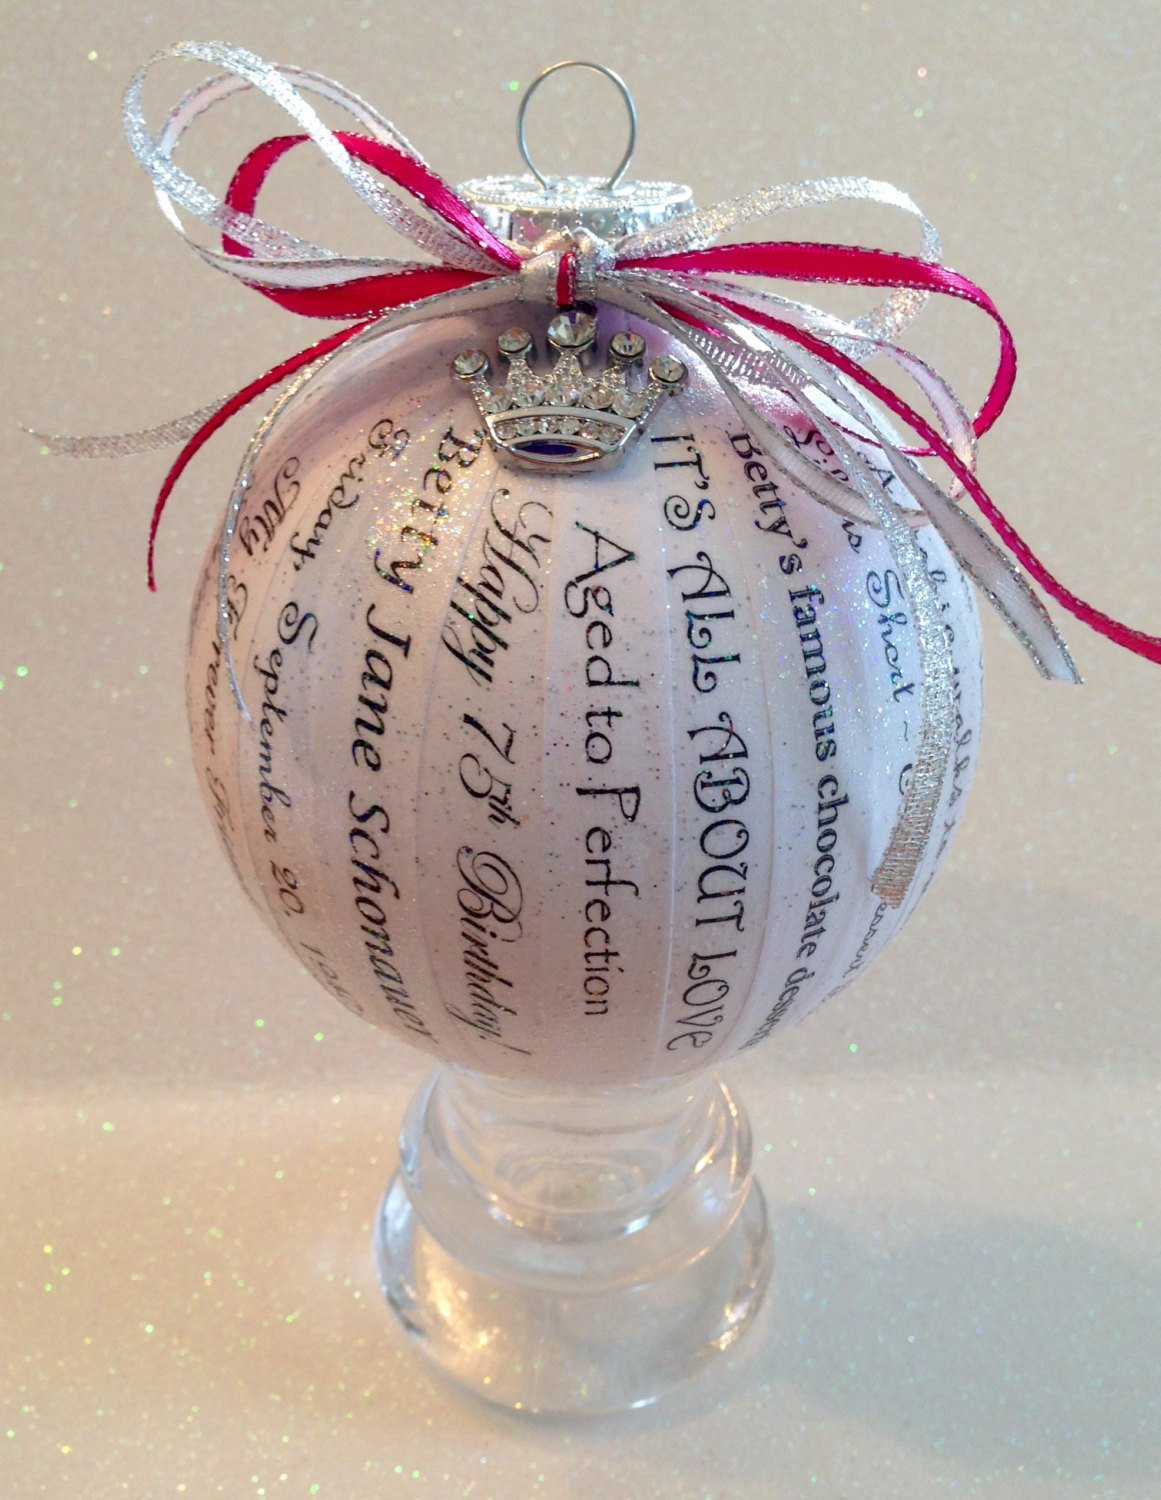 75th Birthday Gifts  75th Birthday Gift Unique Personalized Memory Ornament for